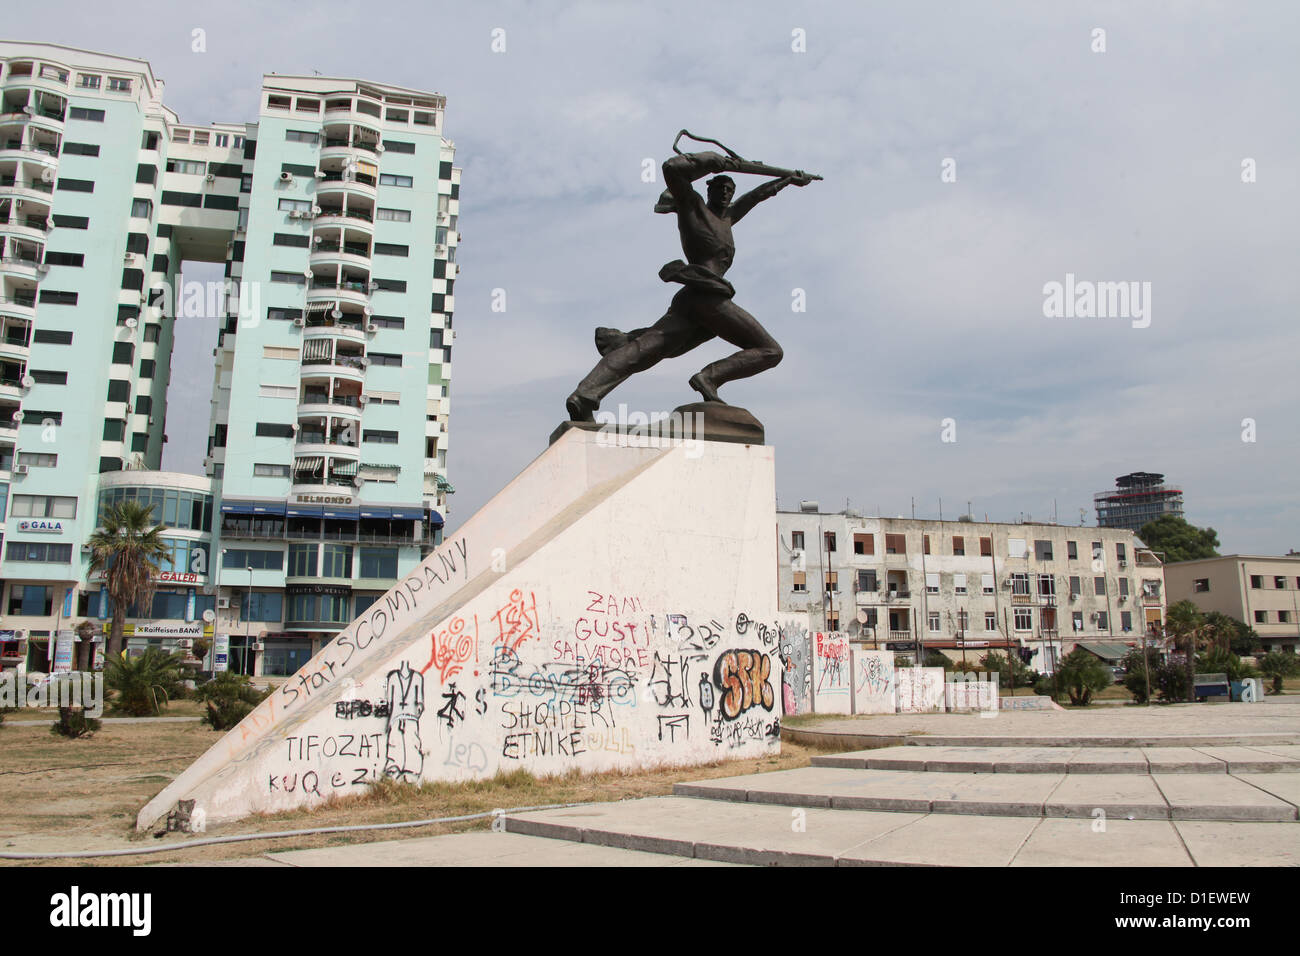 Landmark Socialist Realism Statue of a Soldier at Durres in Albania - Stock Image